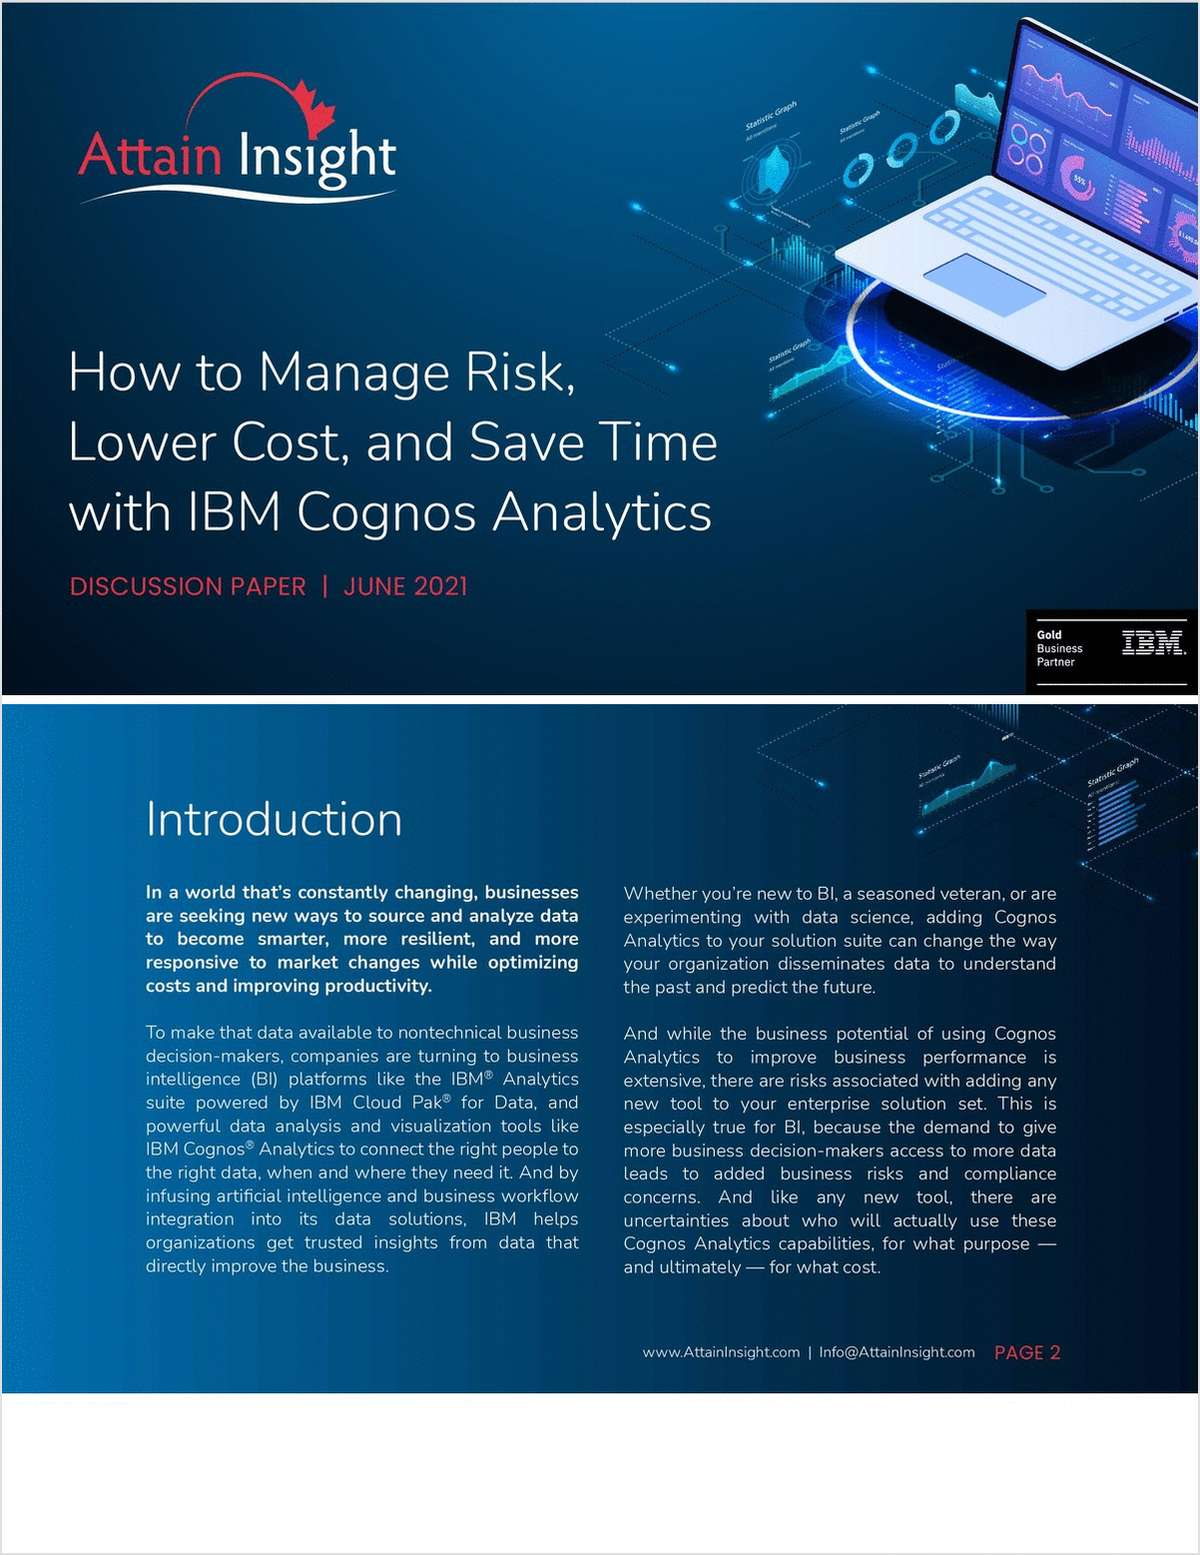 How to Manage Risk, Lower Cost, and Save Time with IBM Cognos Analytics